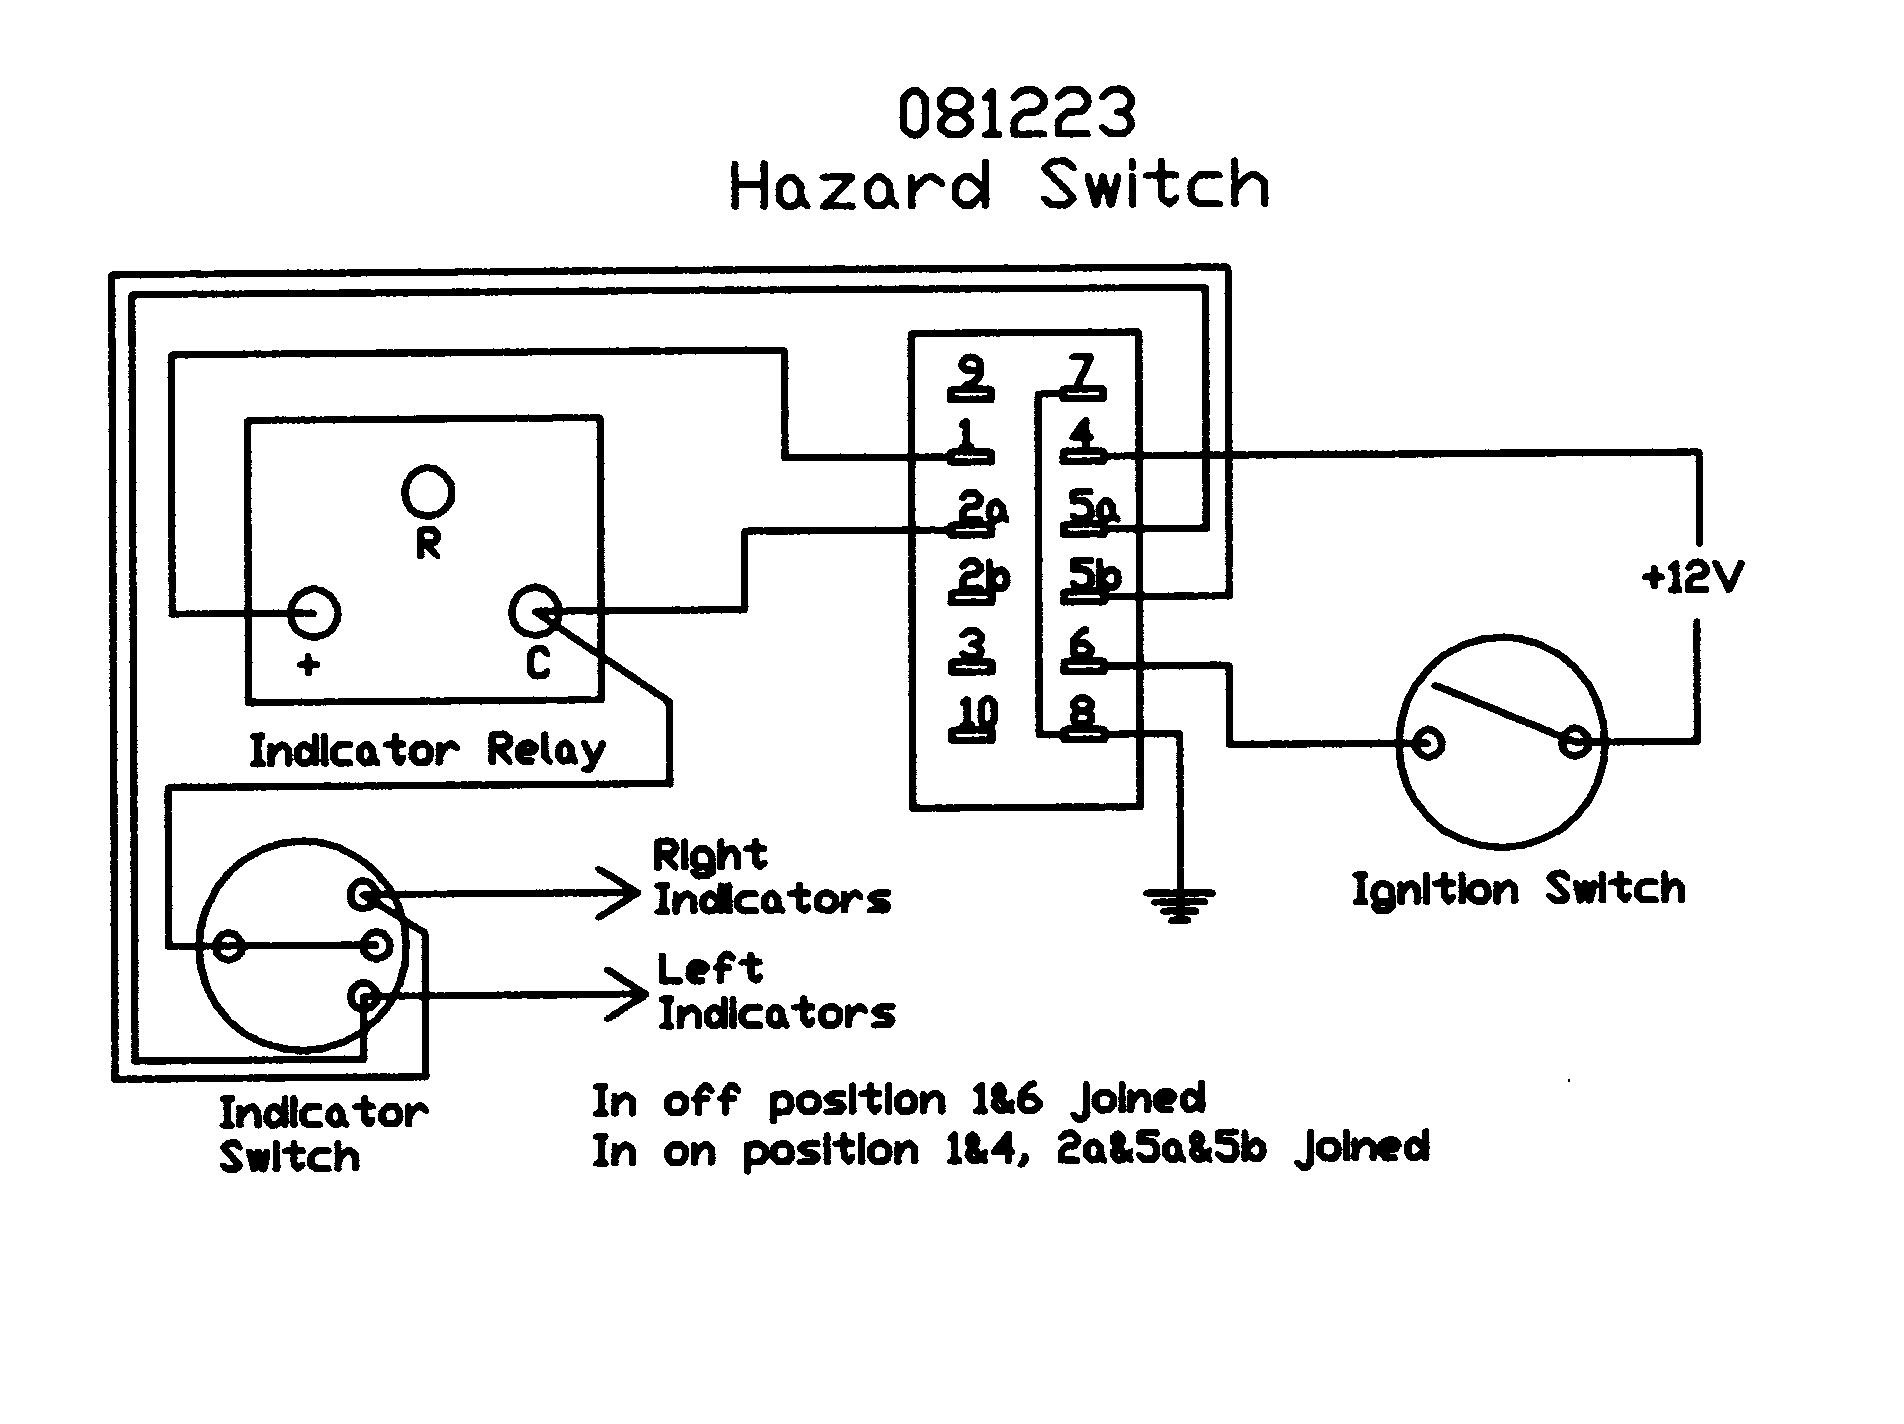 hight resolution of 081223 wiring diagram